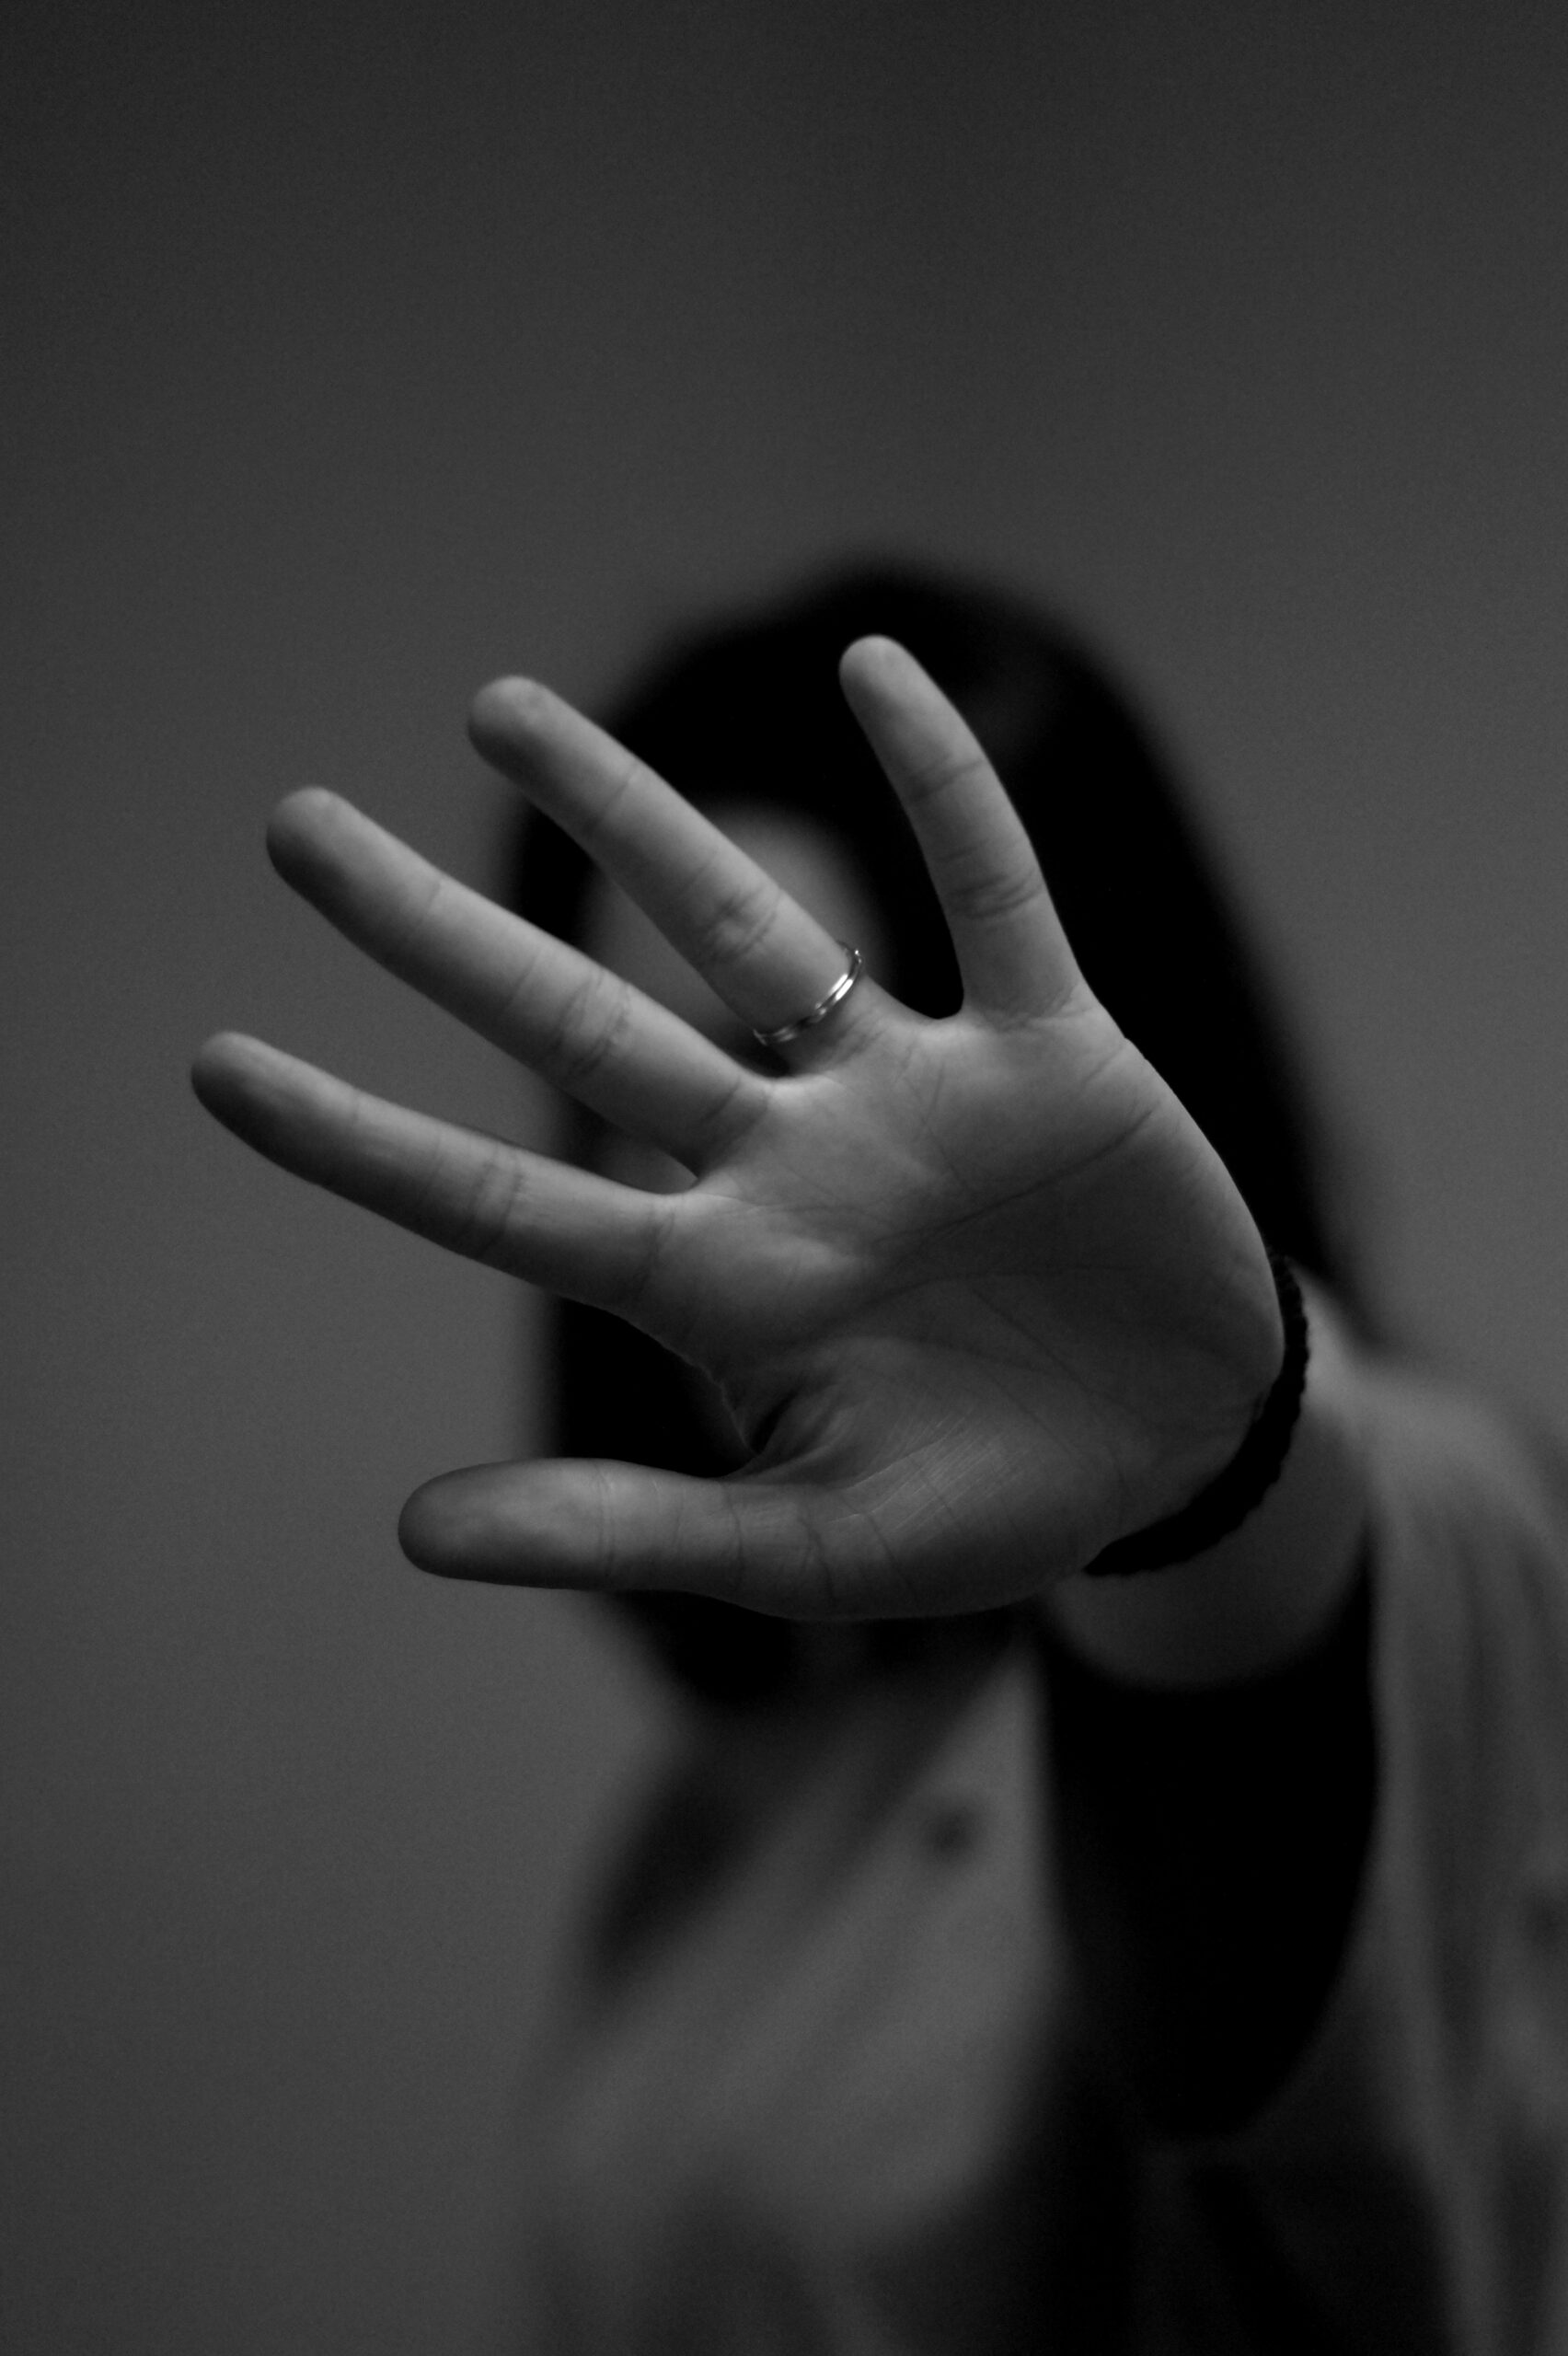 A woman with her hand in front of her blocking her face. Grey-scaled. Photo by Mattia Ascenzo on Unsplash.